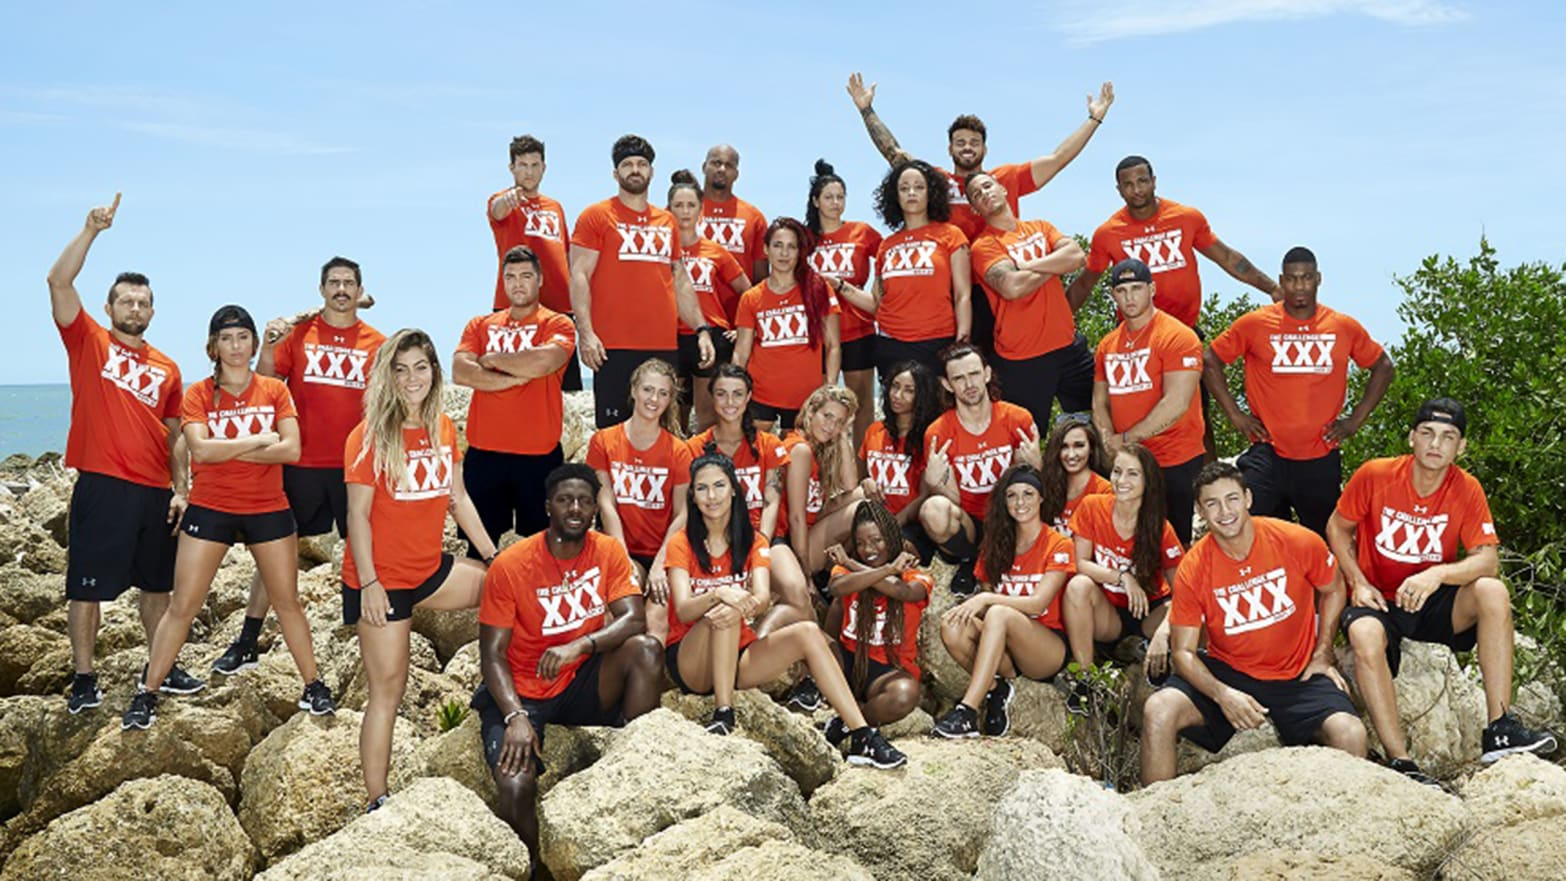 The Brains Behind 'The Real World' on the TV Show That